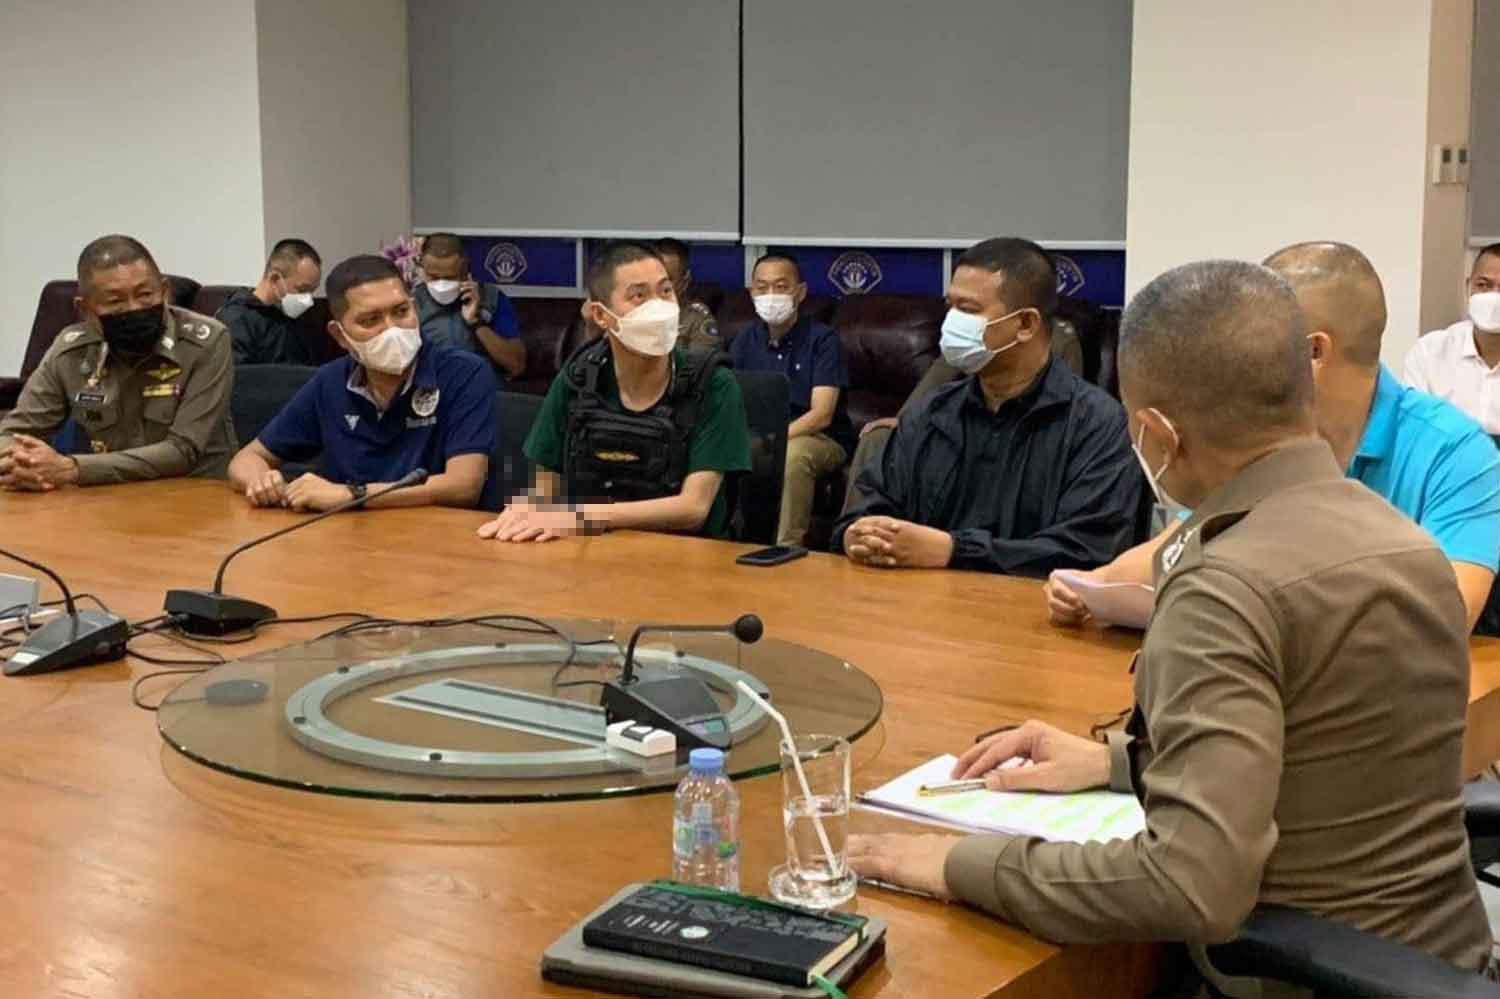 Pol Col Thitisan Utthanaphon (handcuffed) is at the Crime Suppression Division in Bangkok on Thursday night as national police chief Pol Gen Suwat Jangyodsuk (right) questions him. (Police photo)